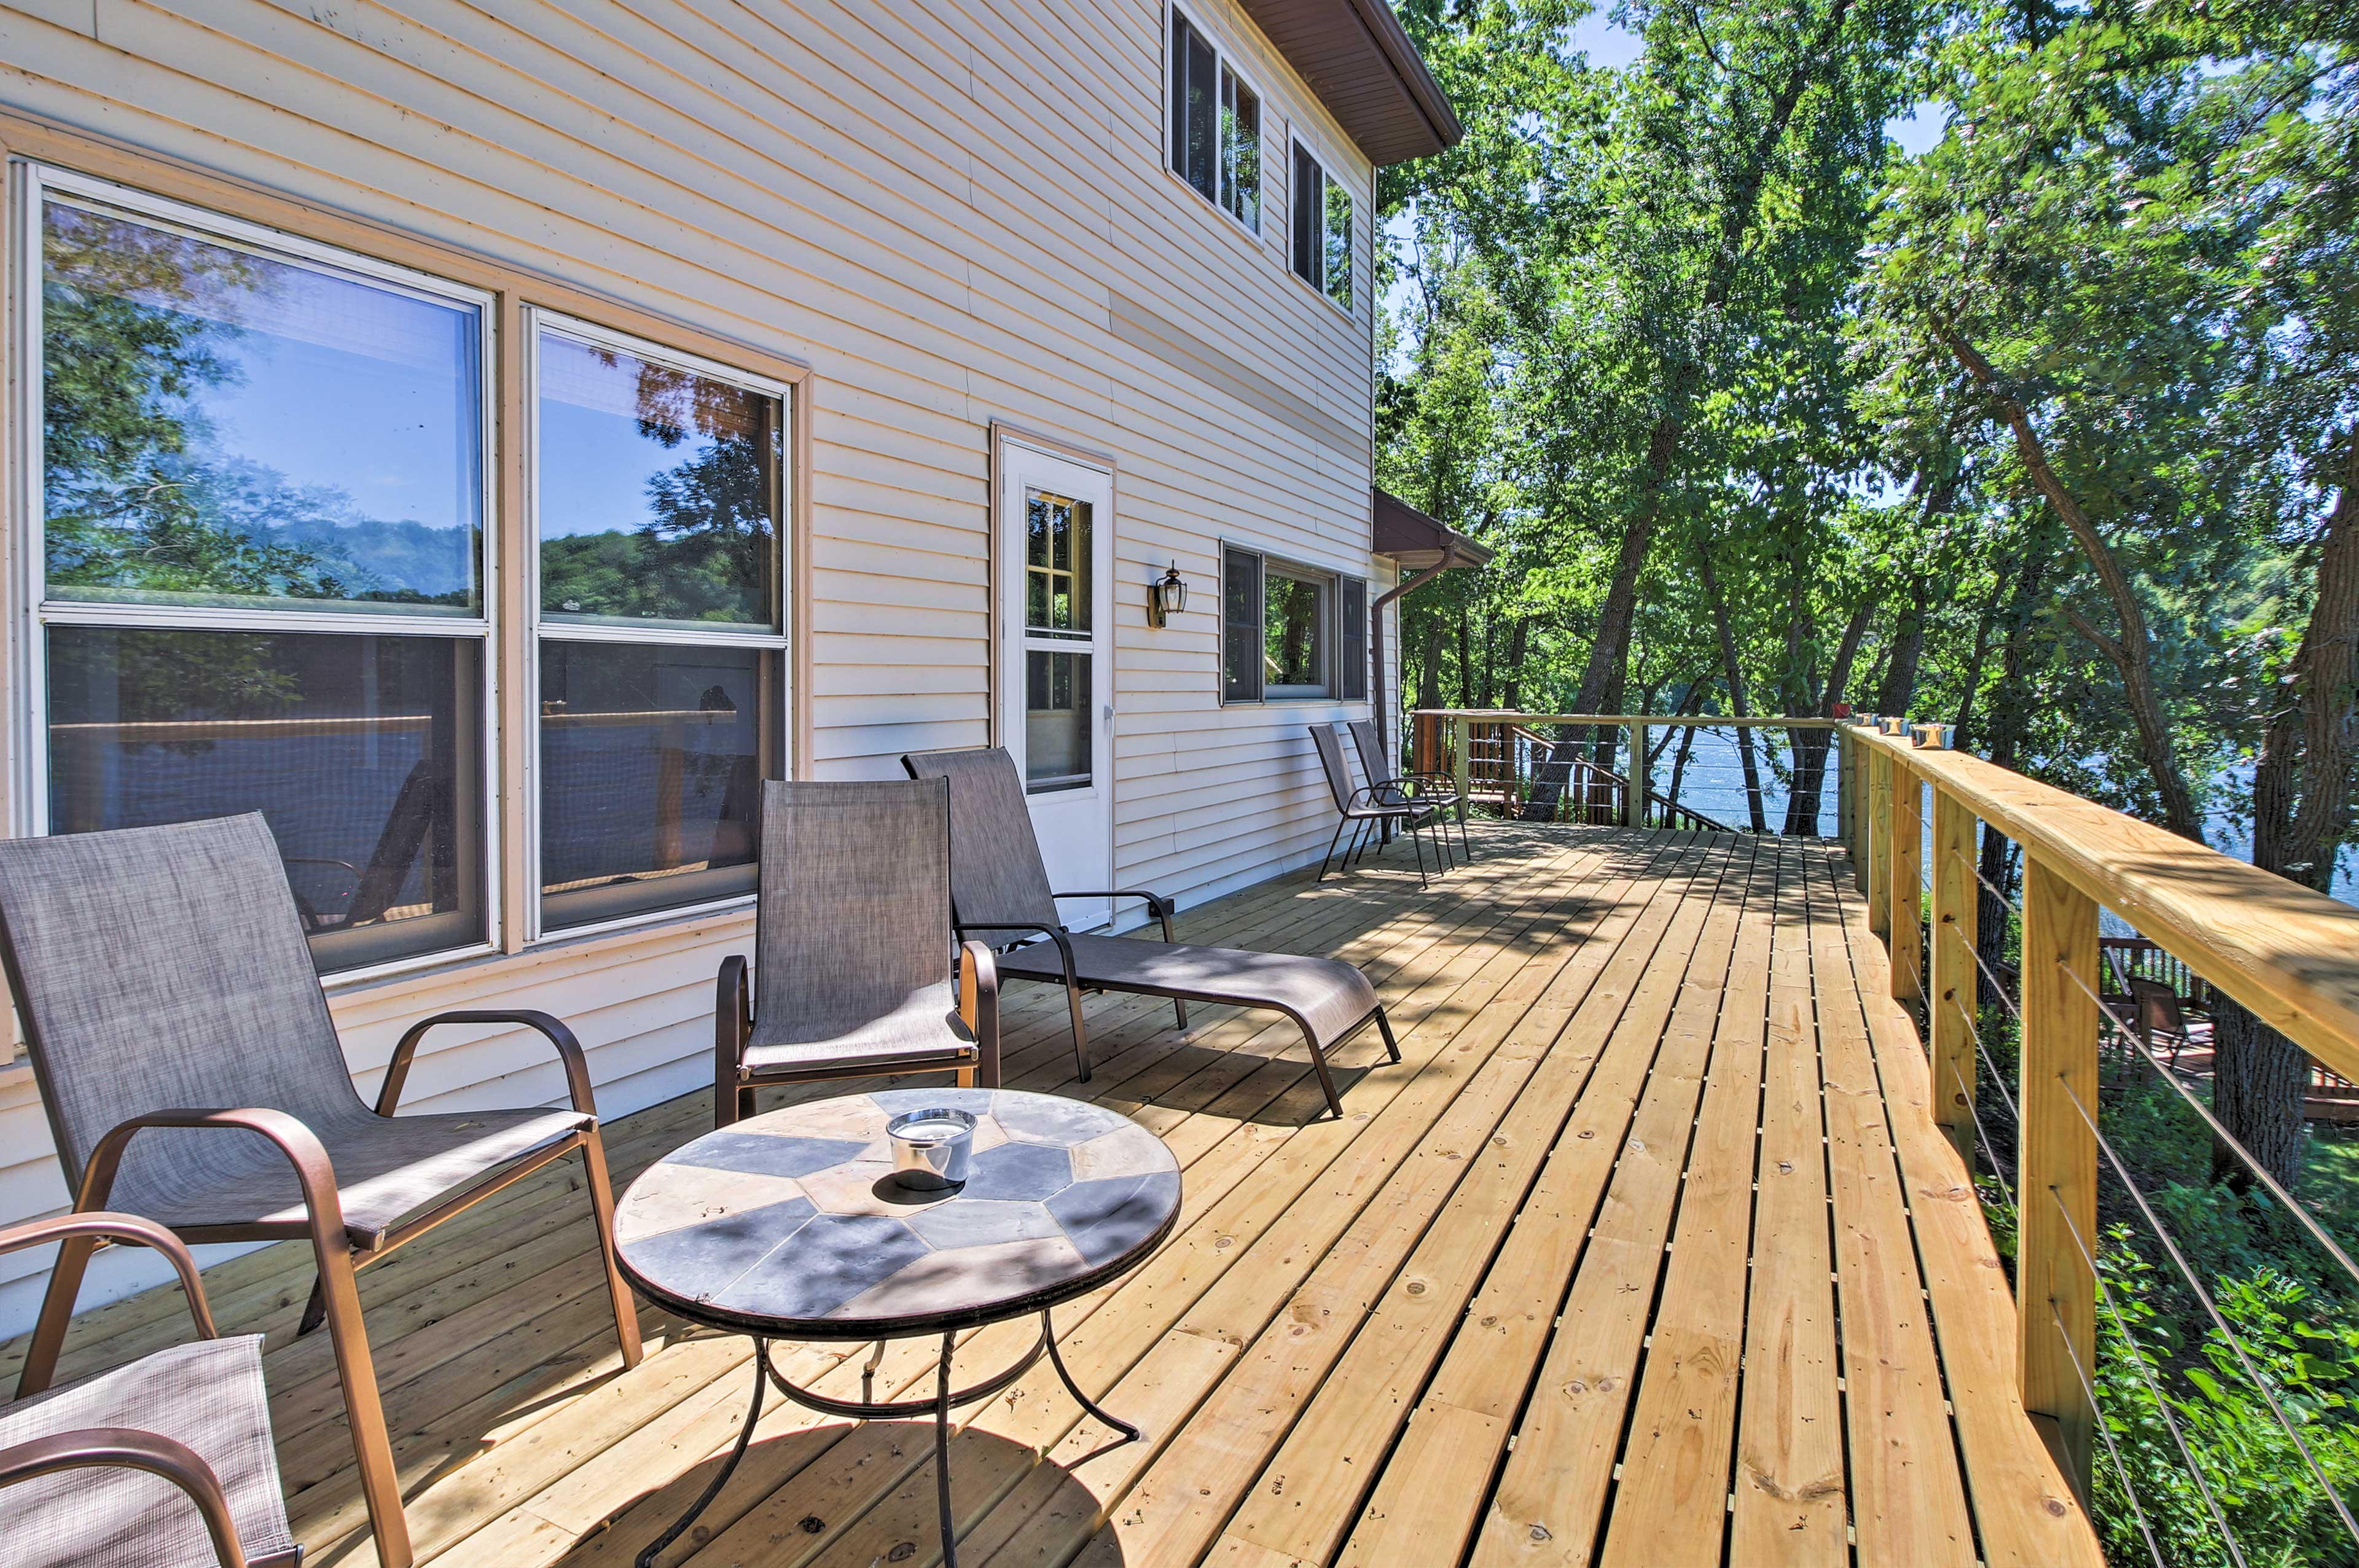 The home offers a new 40' x 10' deck!